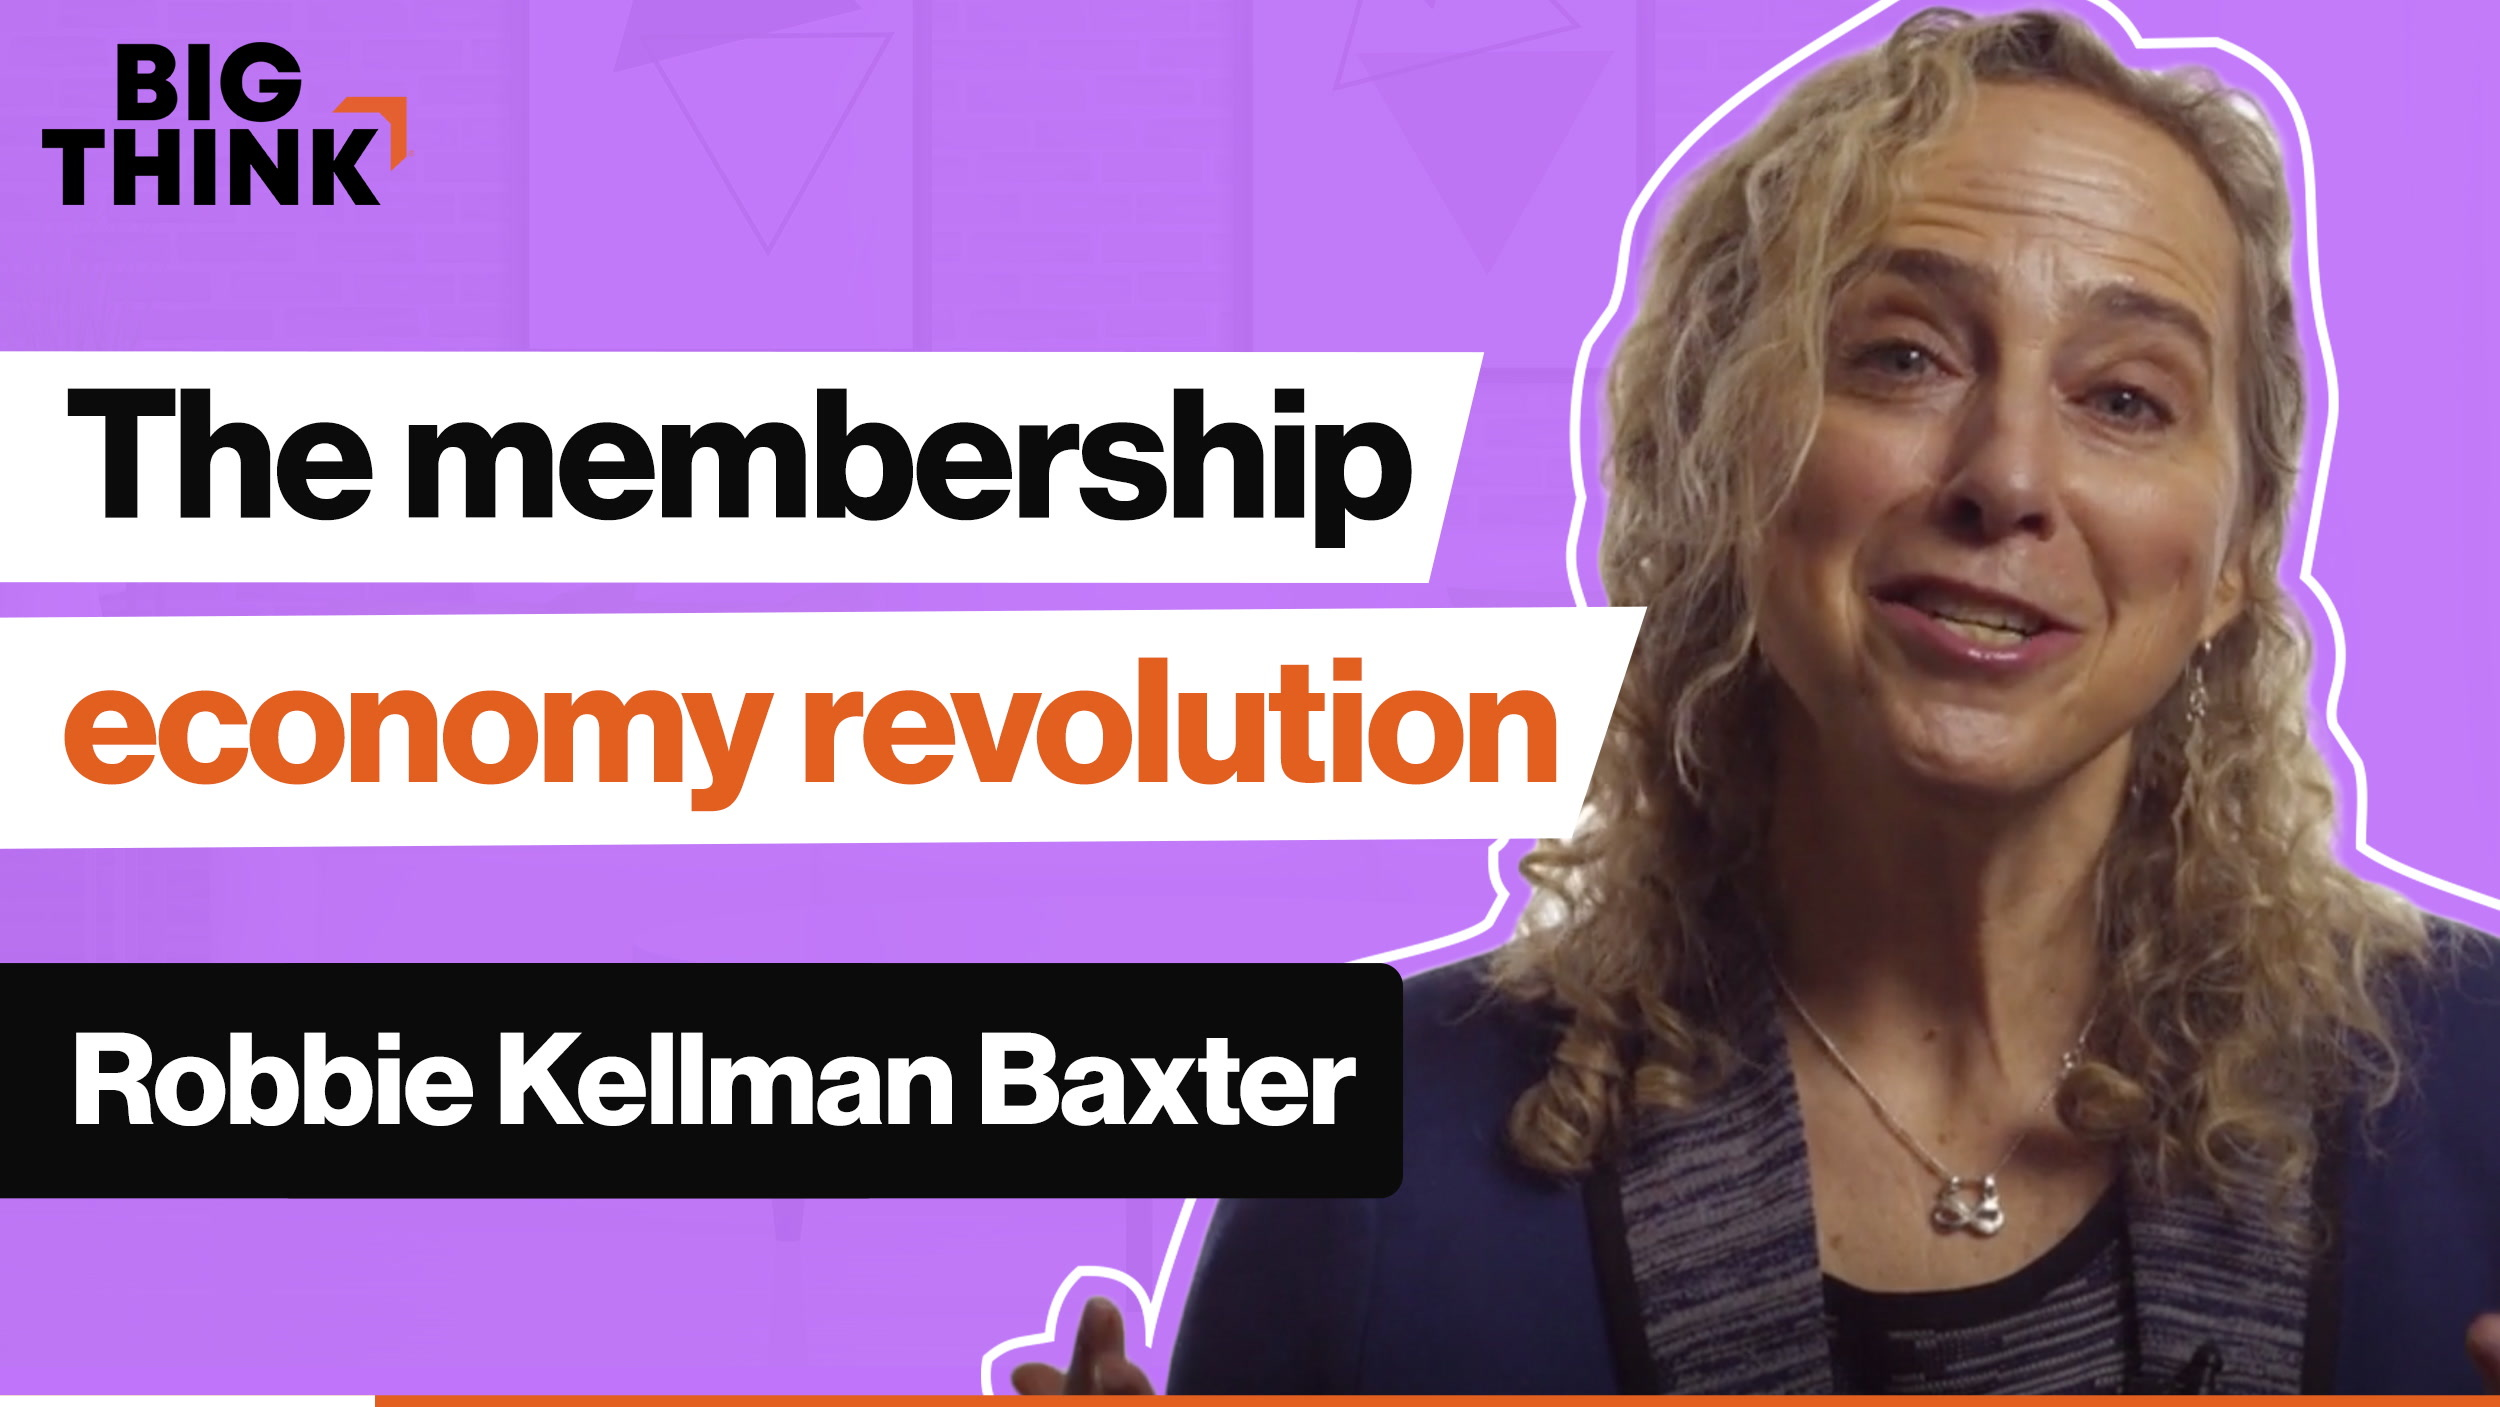 Business revolution: What is the membership economy?